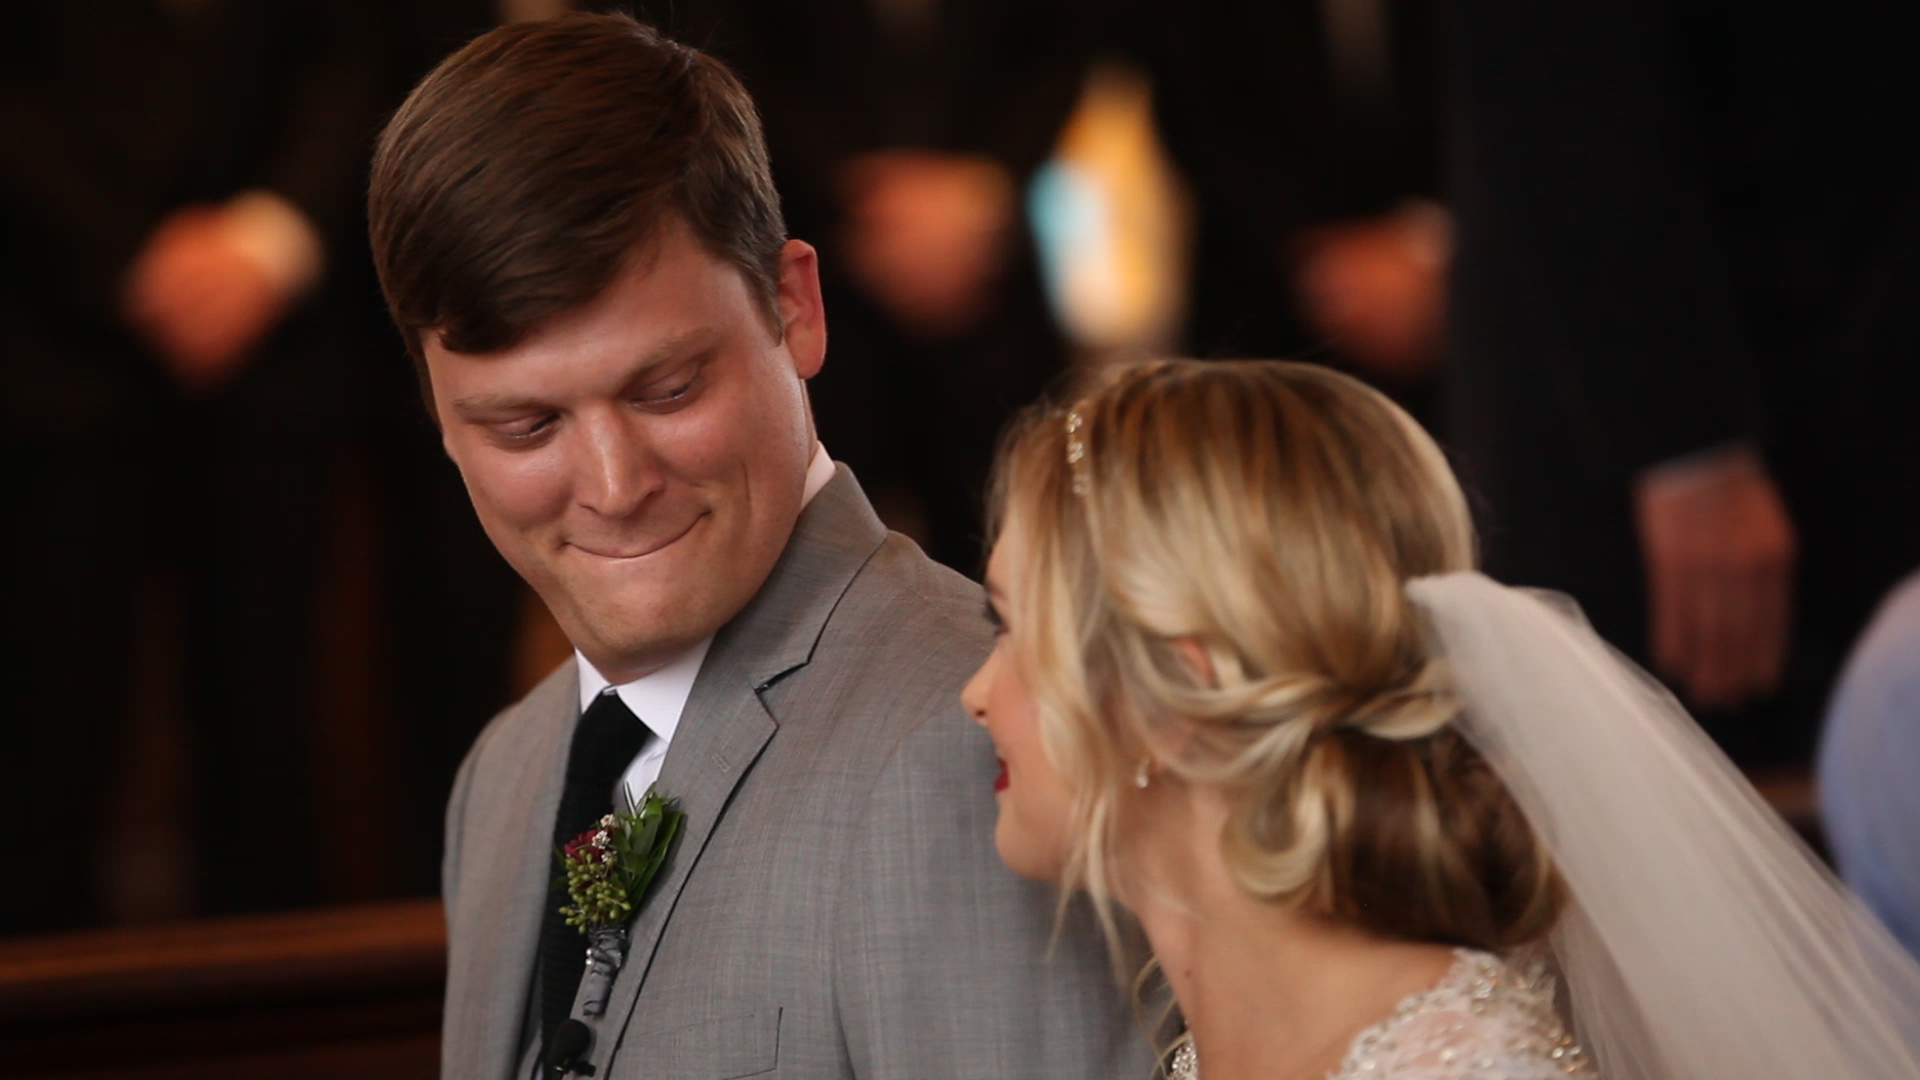 We love this sweet moment between the bride and groom right as they met at the alter.